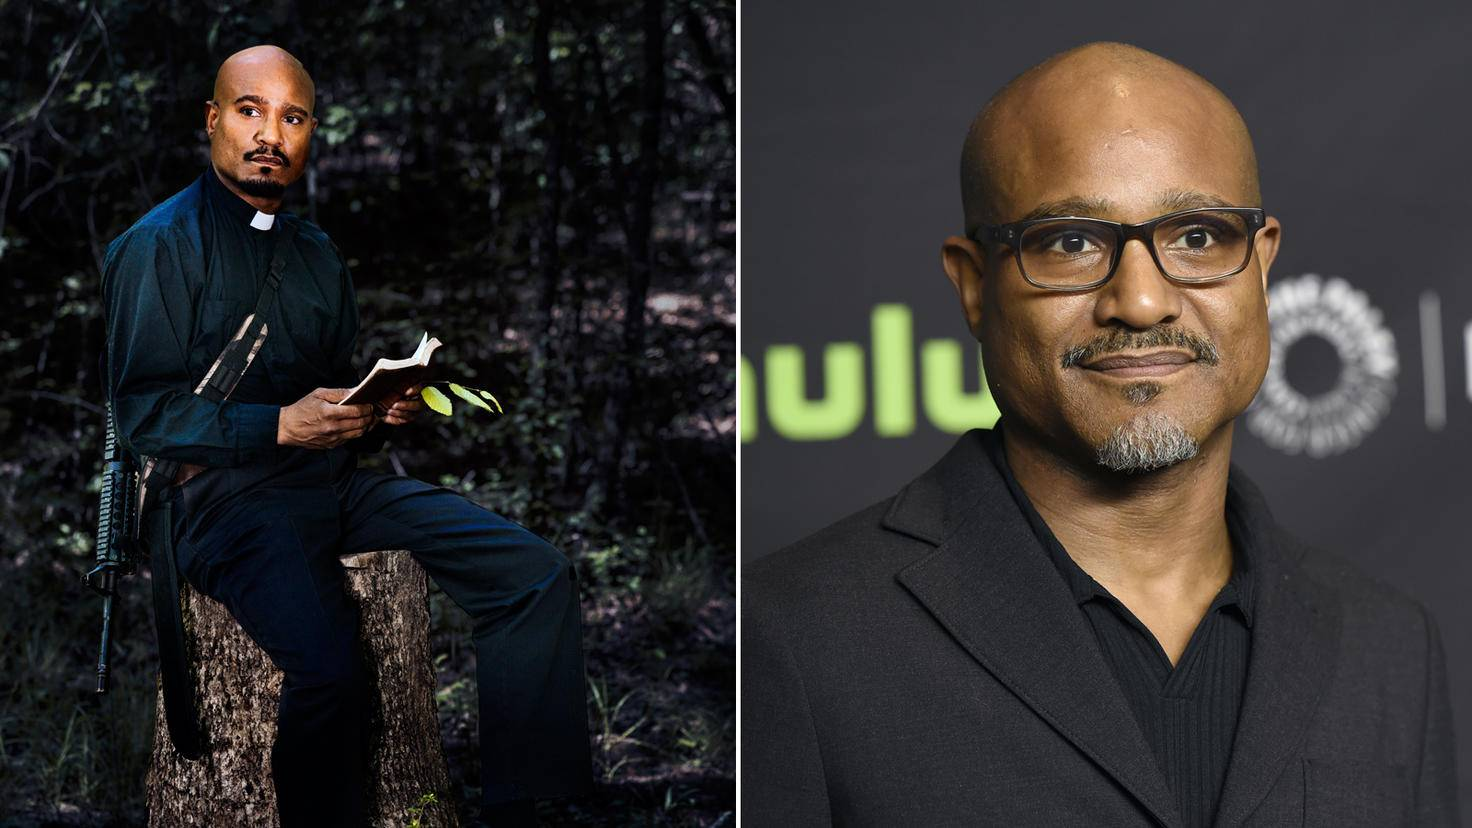 The Walking Dead-S08-Gabriel-AMC-Seth Gilliam-picture alliance AP Images-89114822